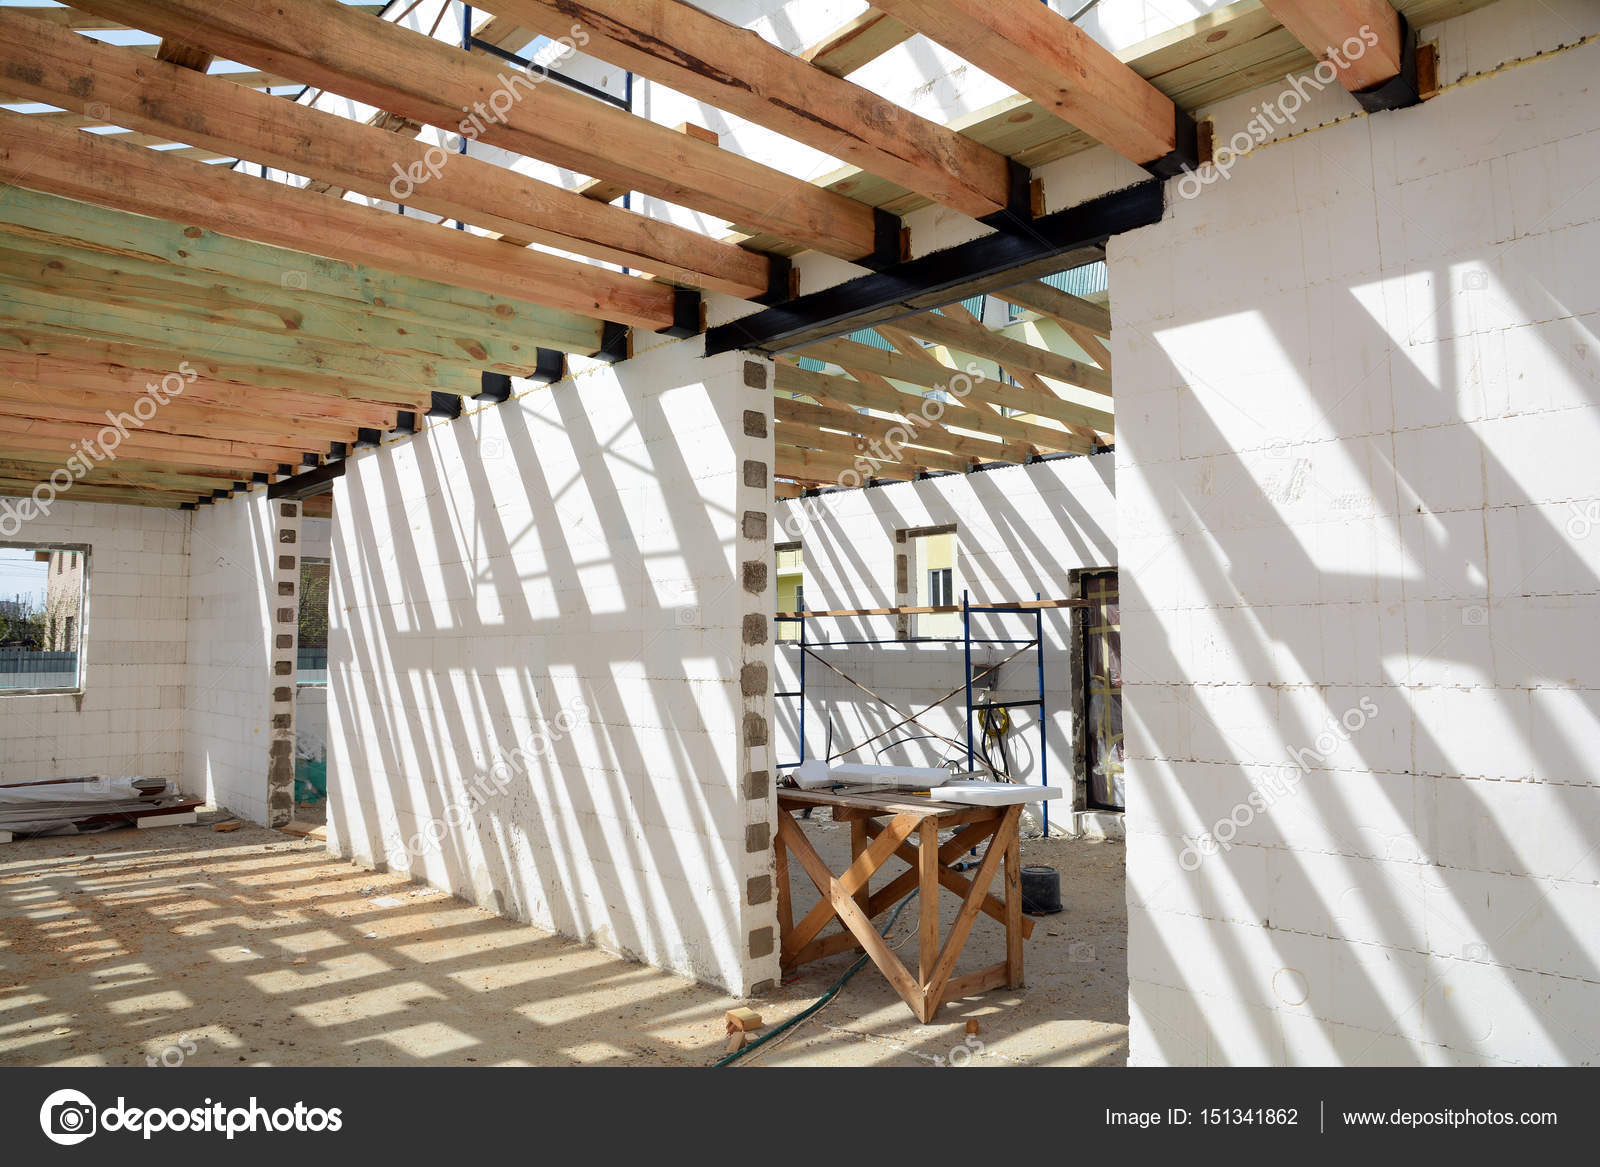 The wooden structure of the building wooden frame for Soportes para techos de madera